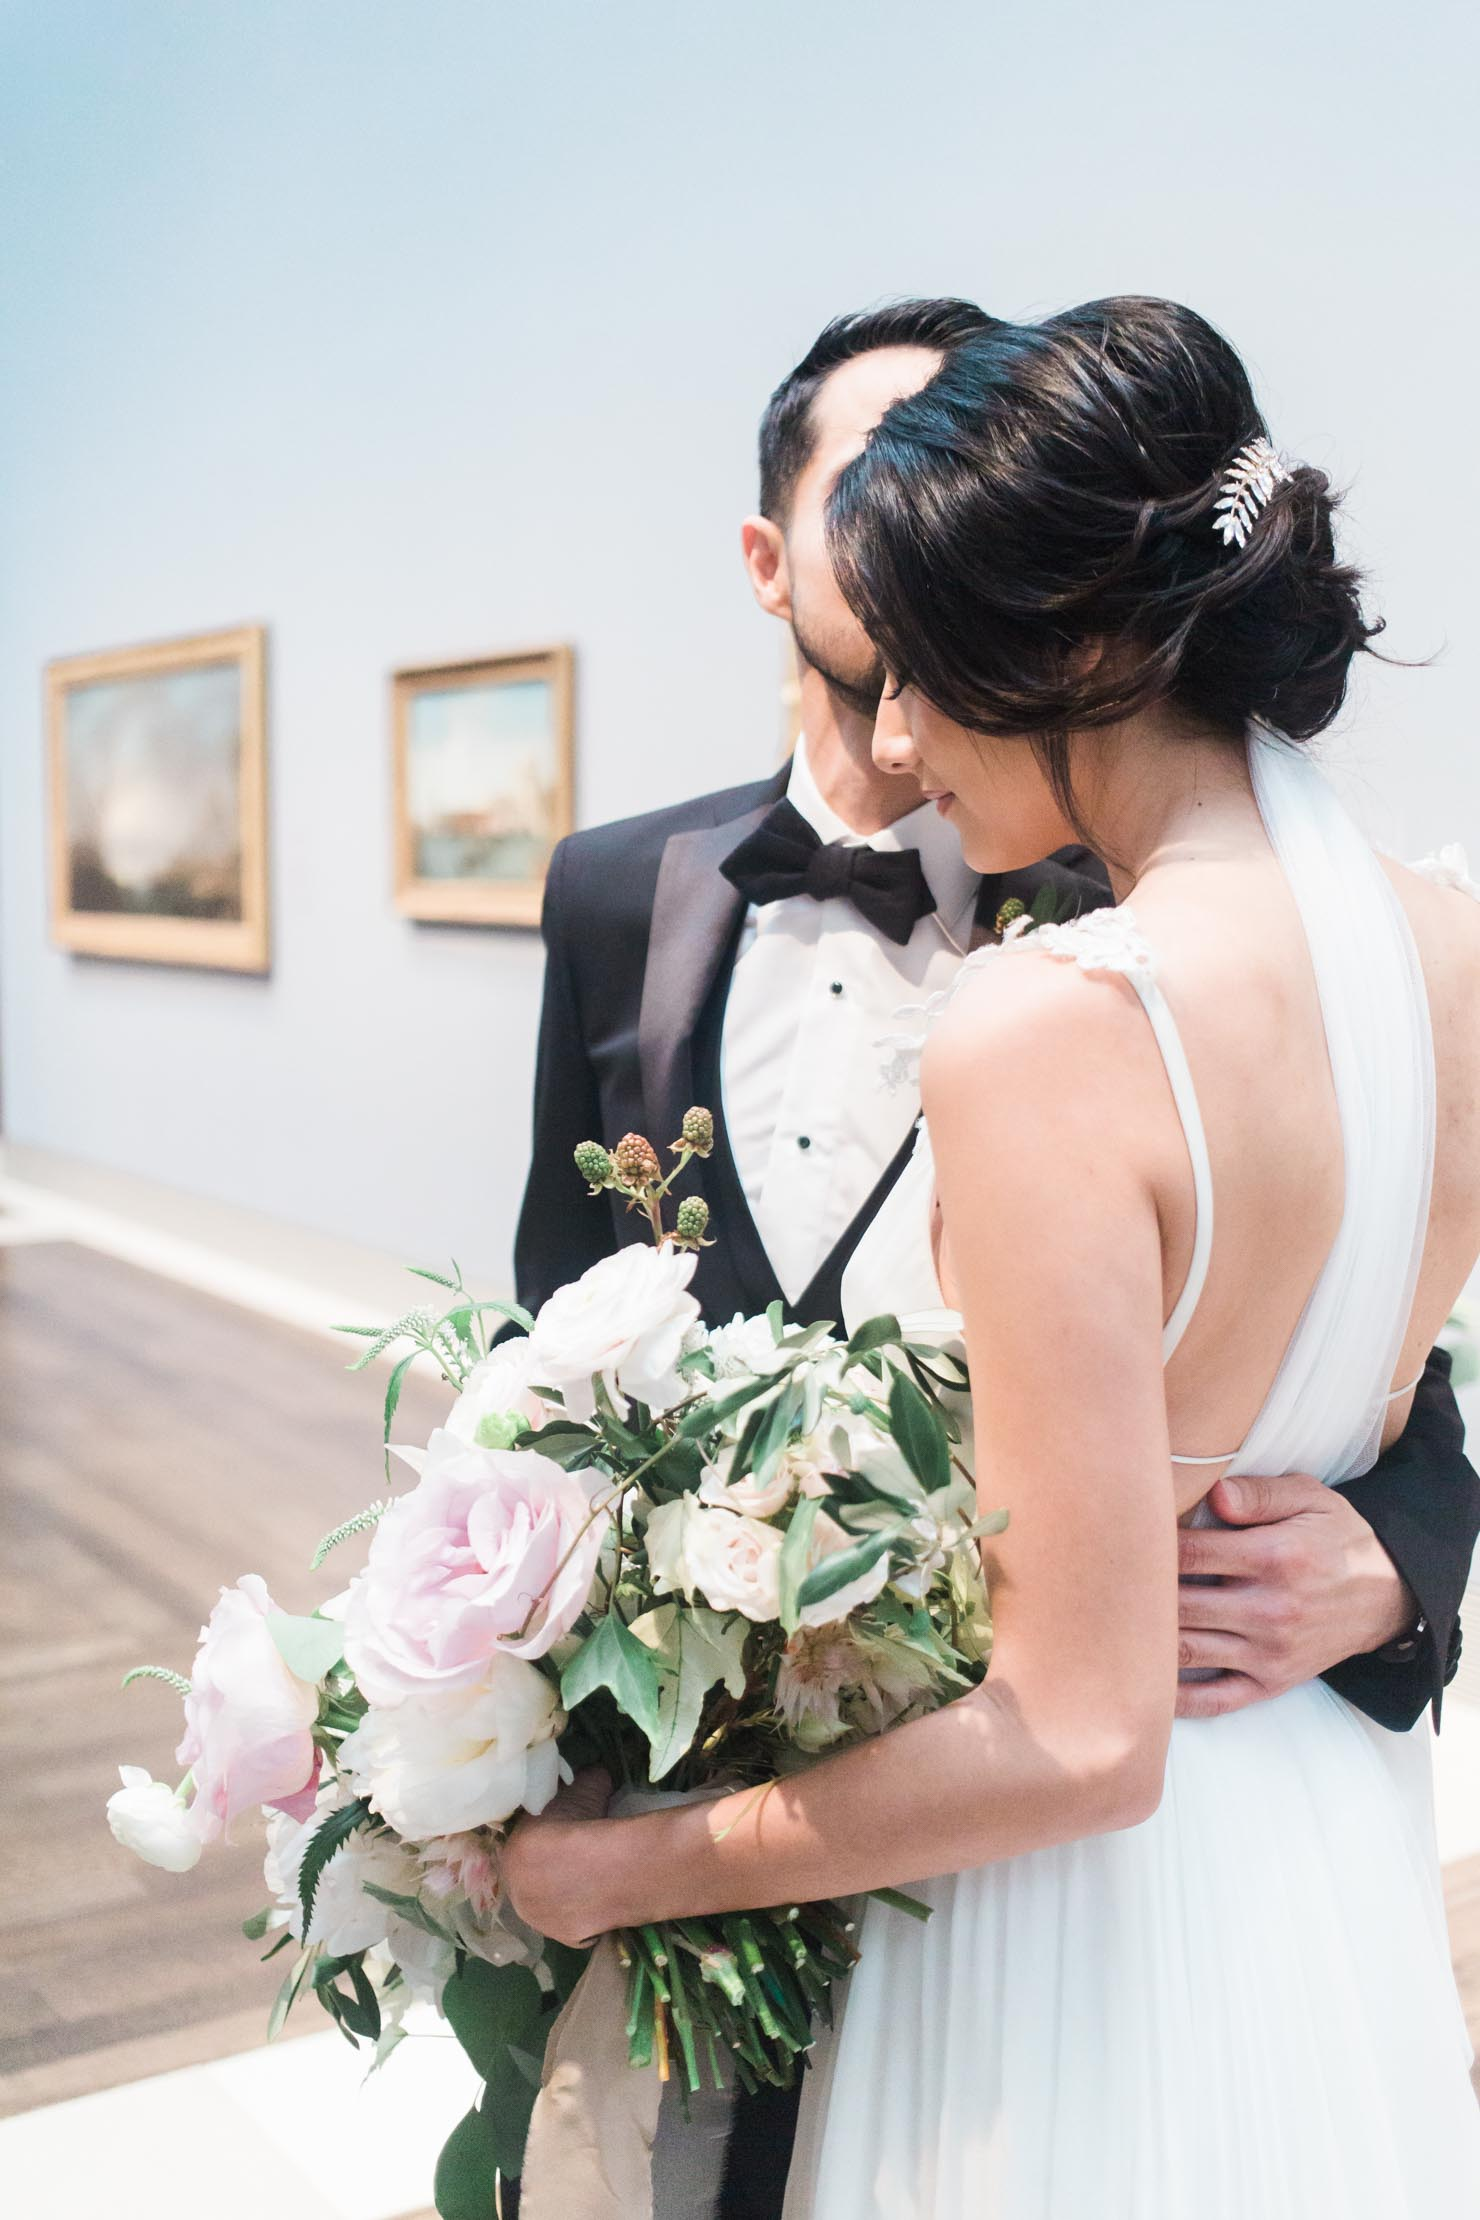 Fashion blogger Lilly Beltran of Daily Craving celebrates 10 year wedding anniversary with a bridal styled shoot